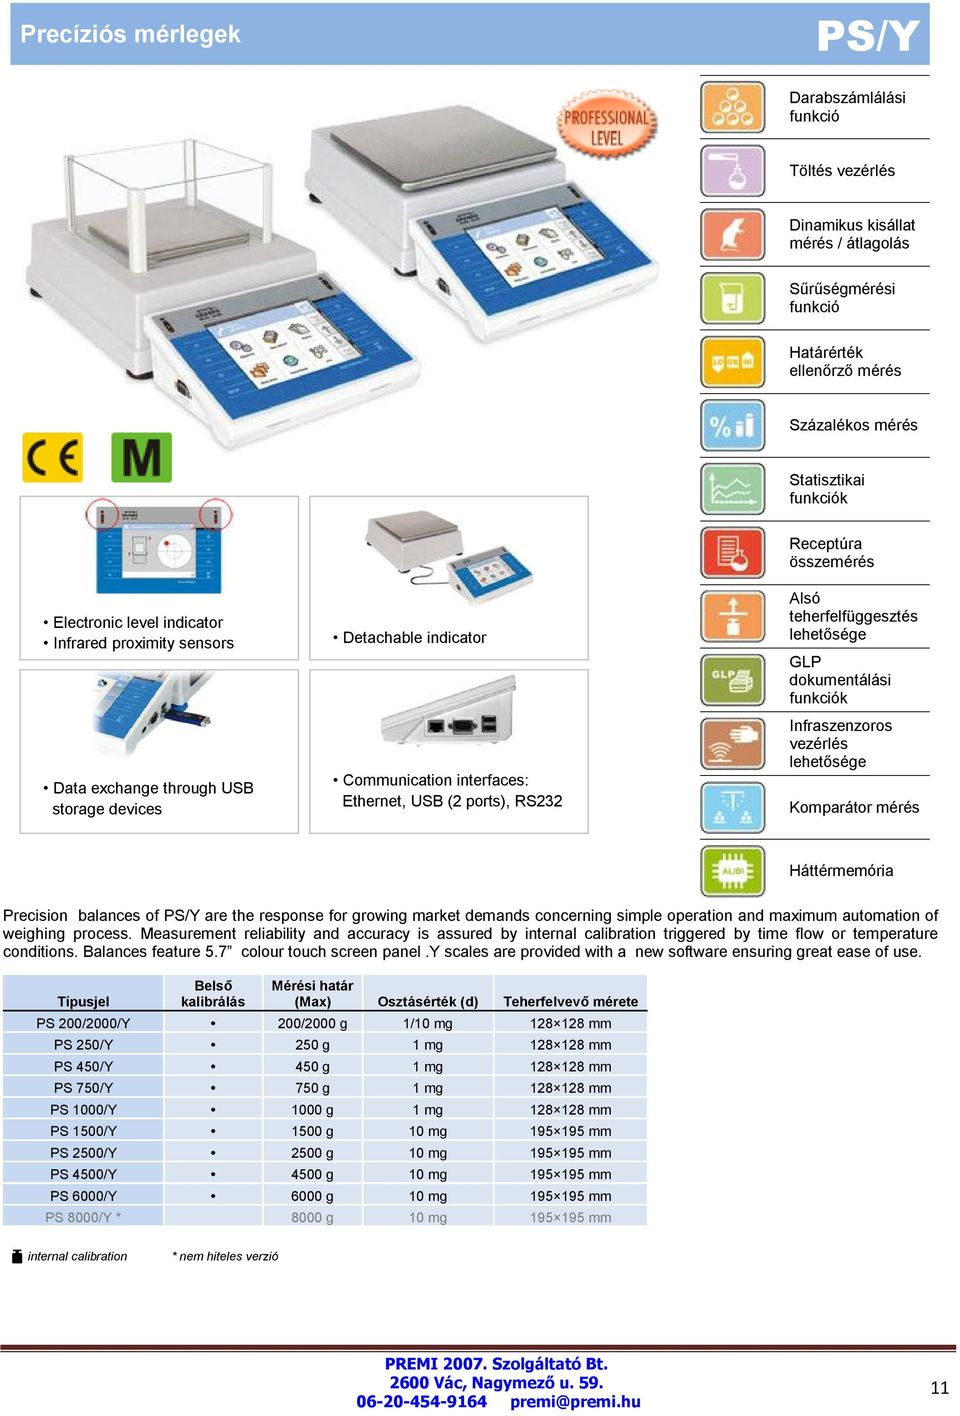 Precision balances of PS/Y are the response for growing market demands concerning simple operation and maximum automation of weighing process.